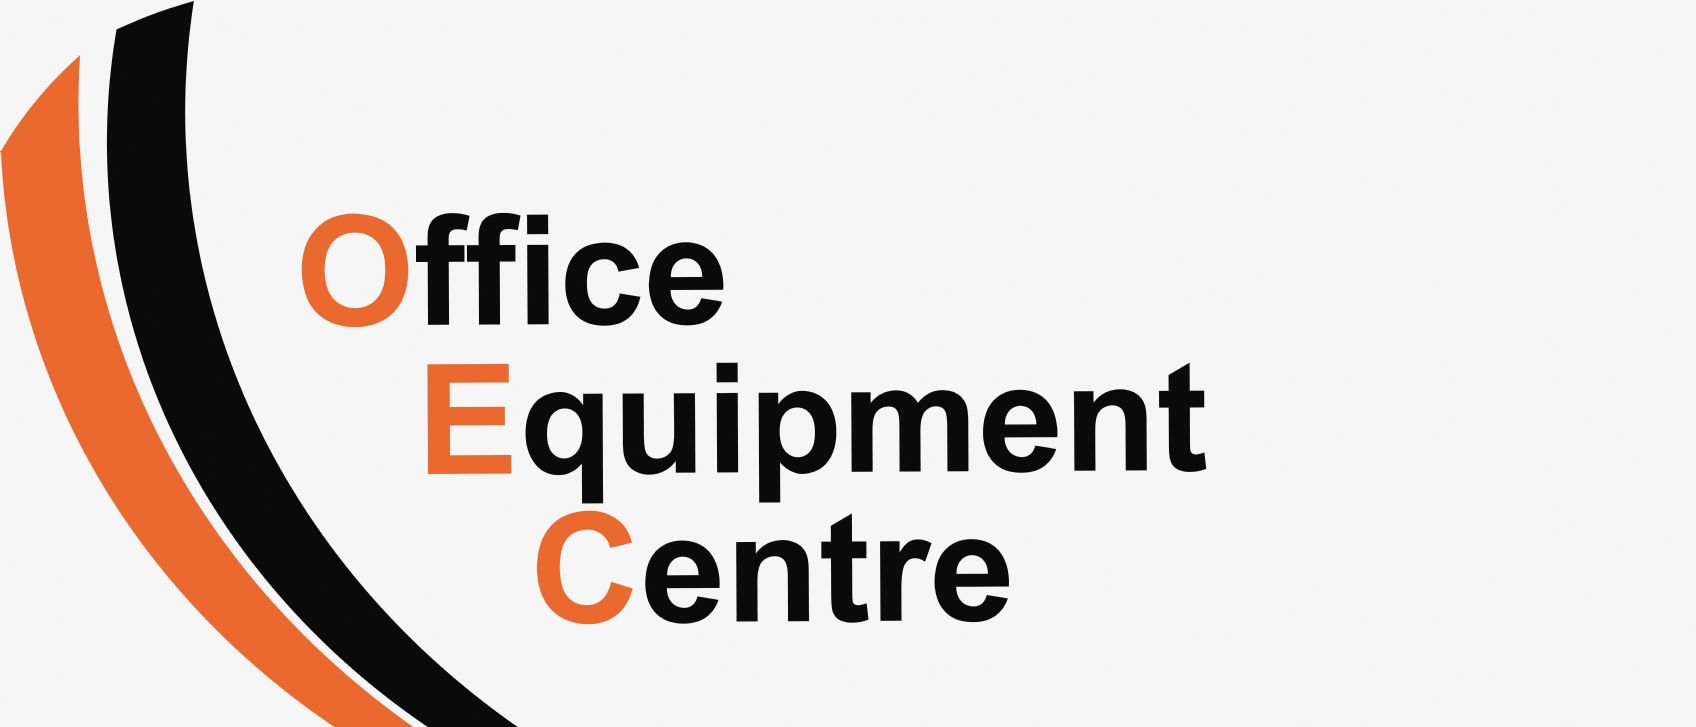 Office Equipment Centre Logo